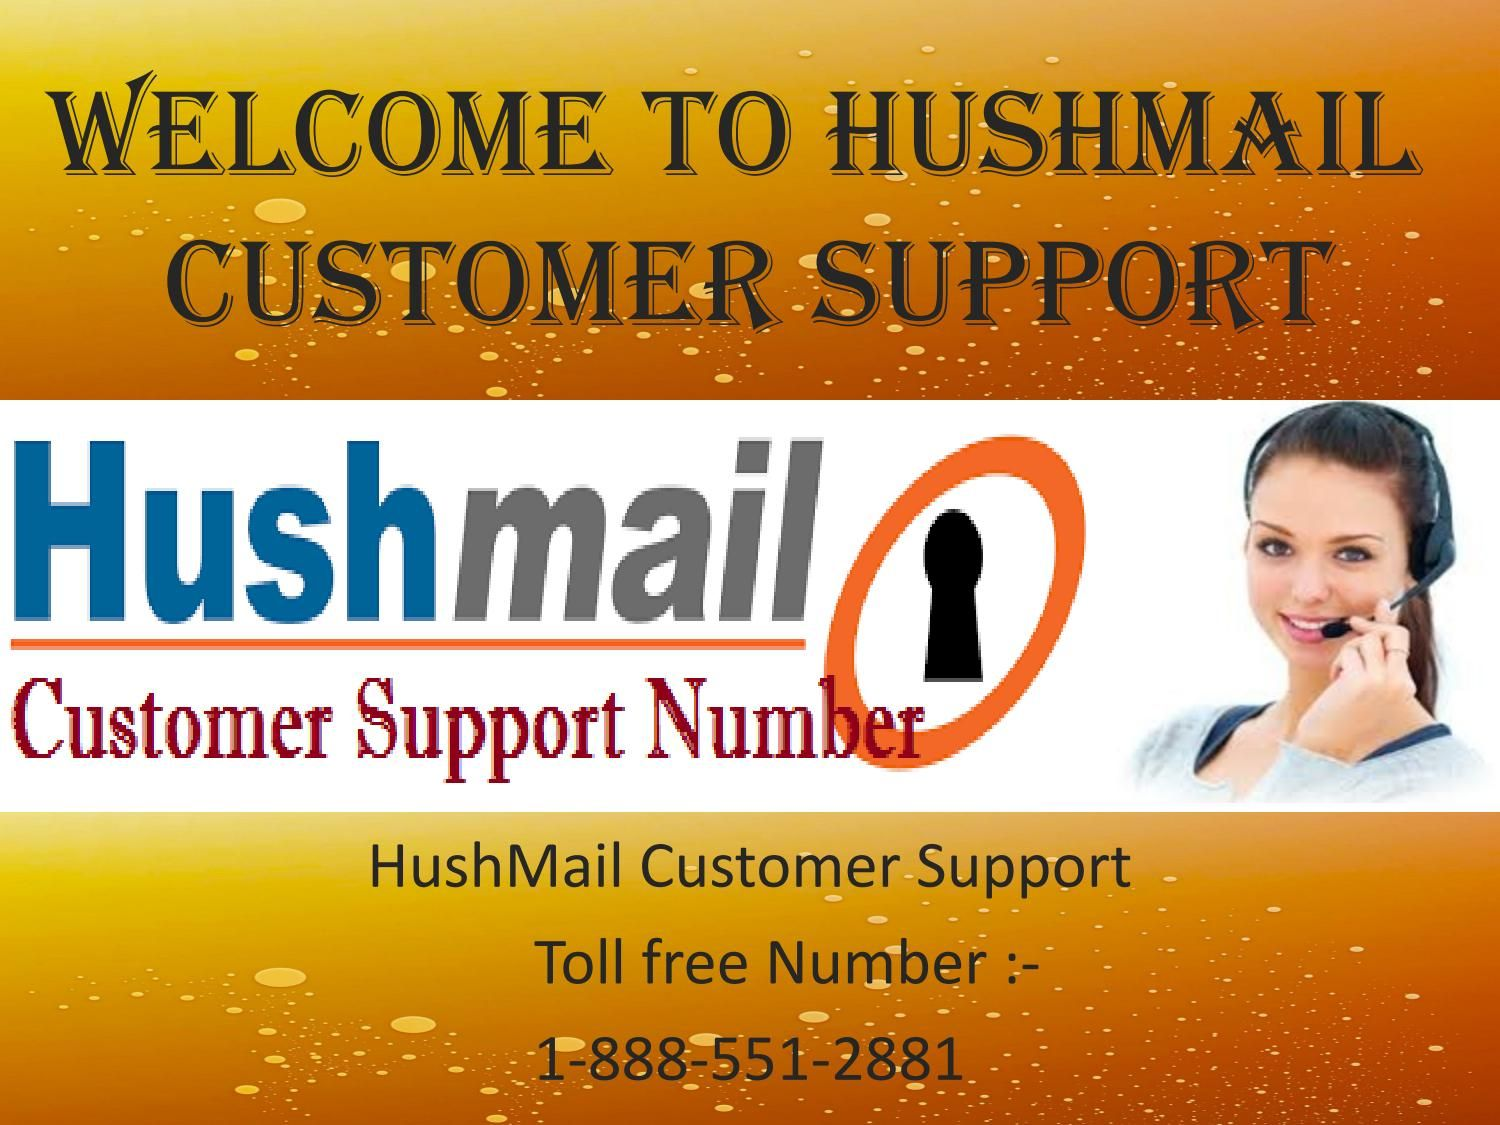 Hushmail customer support phone number Finance tips